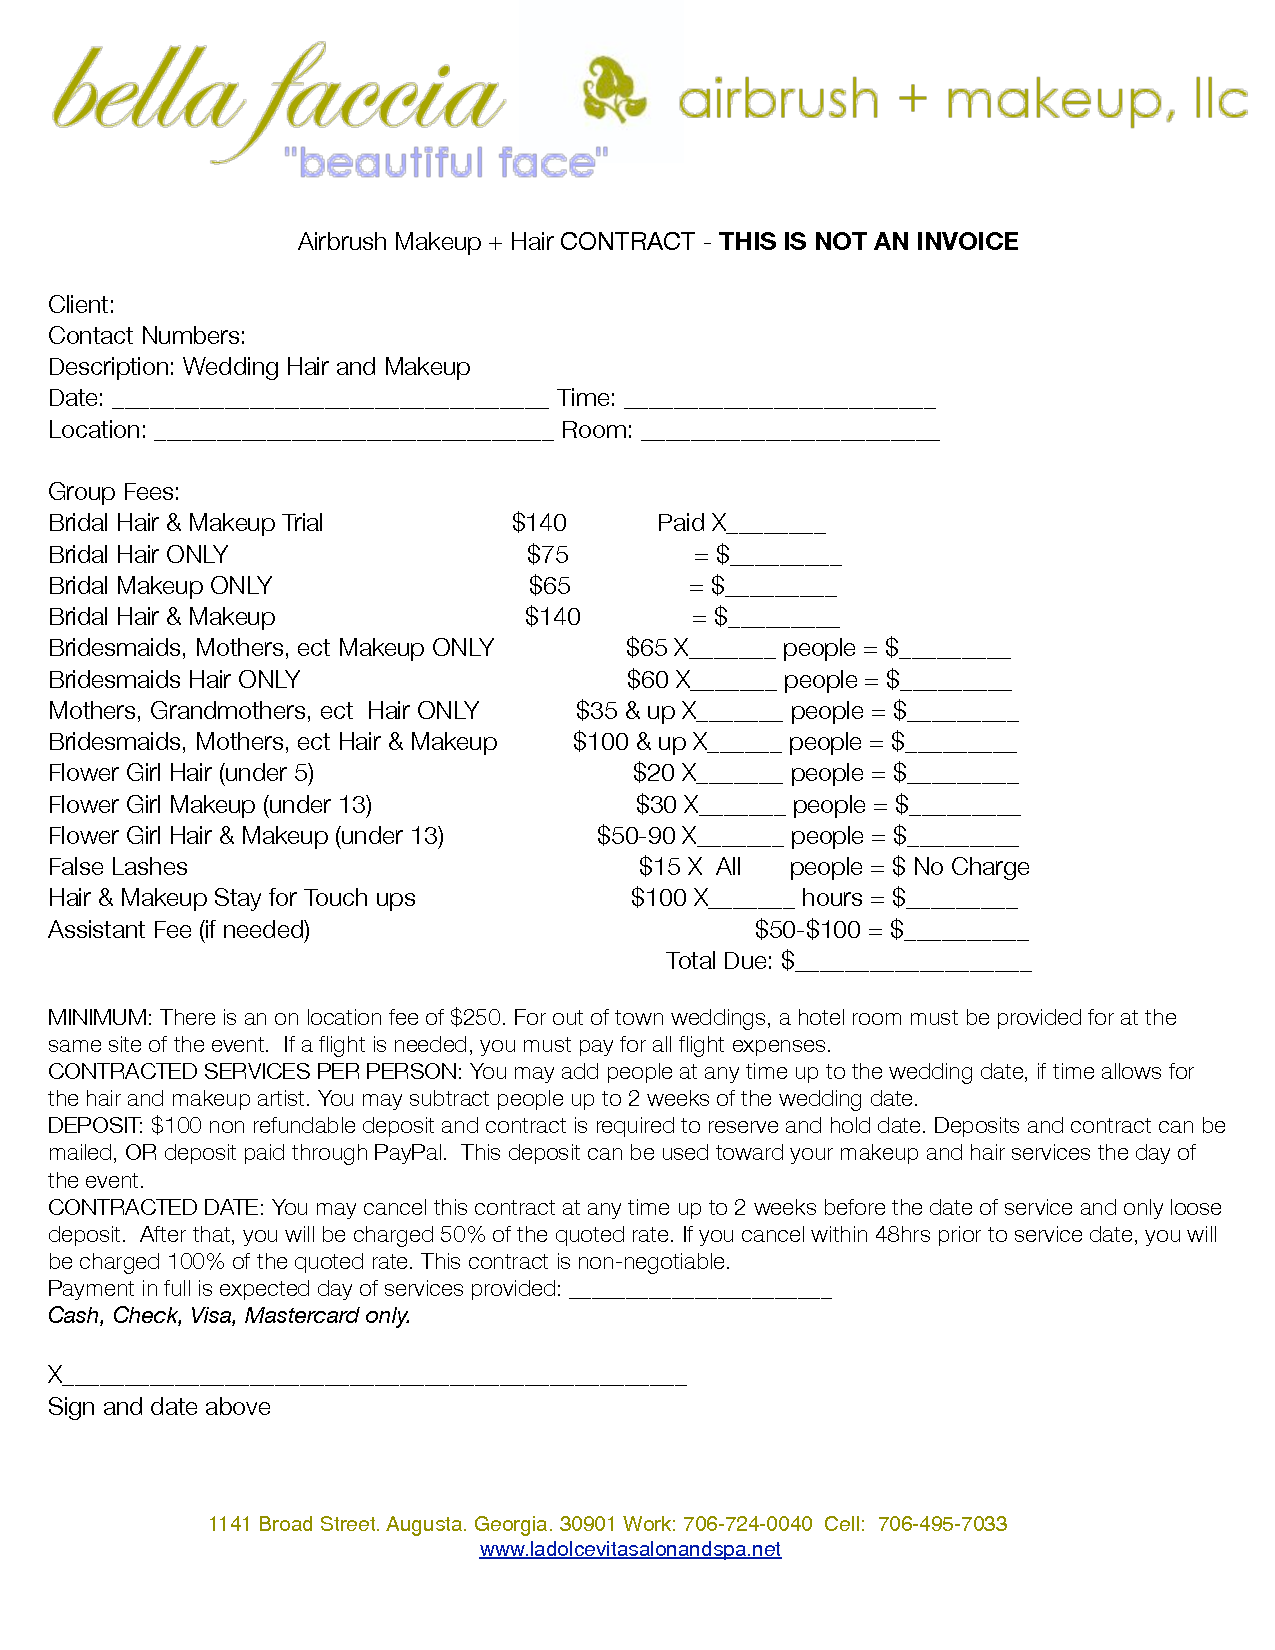 bridalhaircotract airbrush makeup hair contract this is not an invoice client